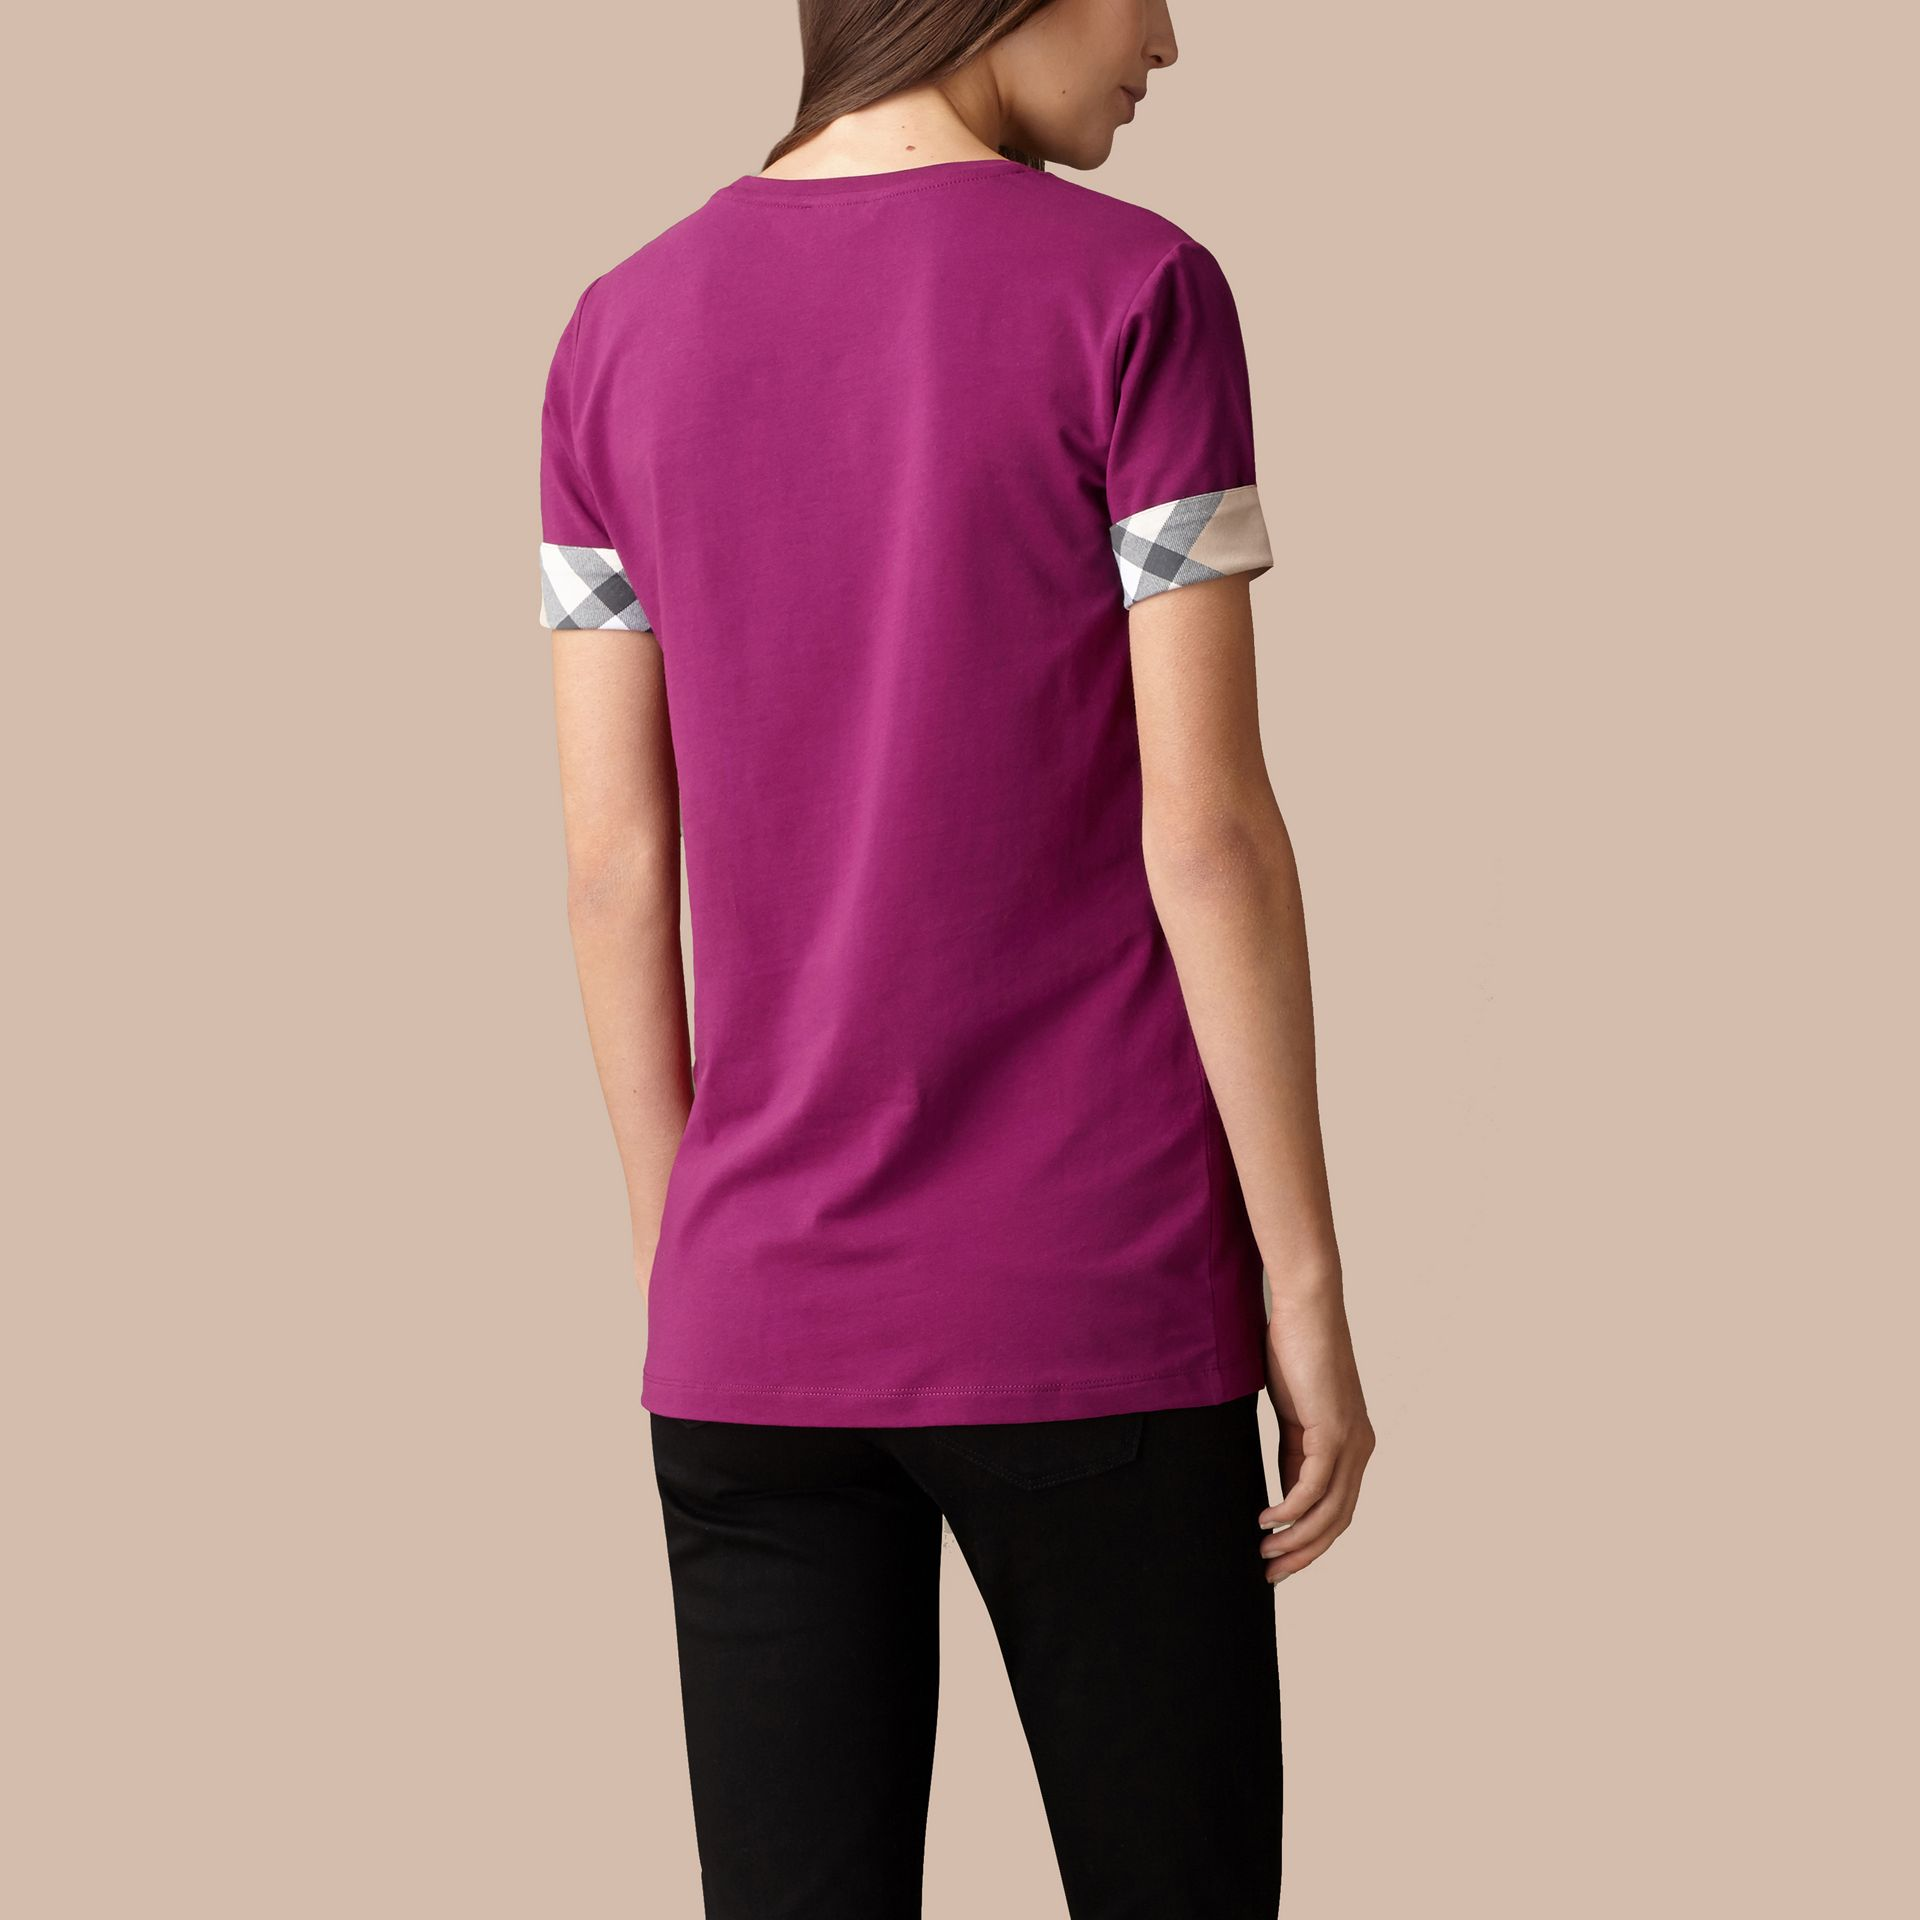 Check Cuff Stretch Cotton T-Shirt in Magenta Pink - Women | Burberry - gallery image 3